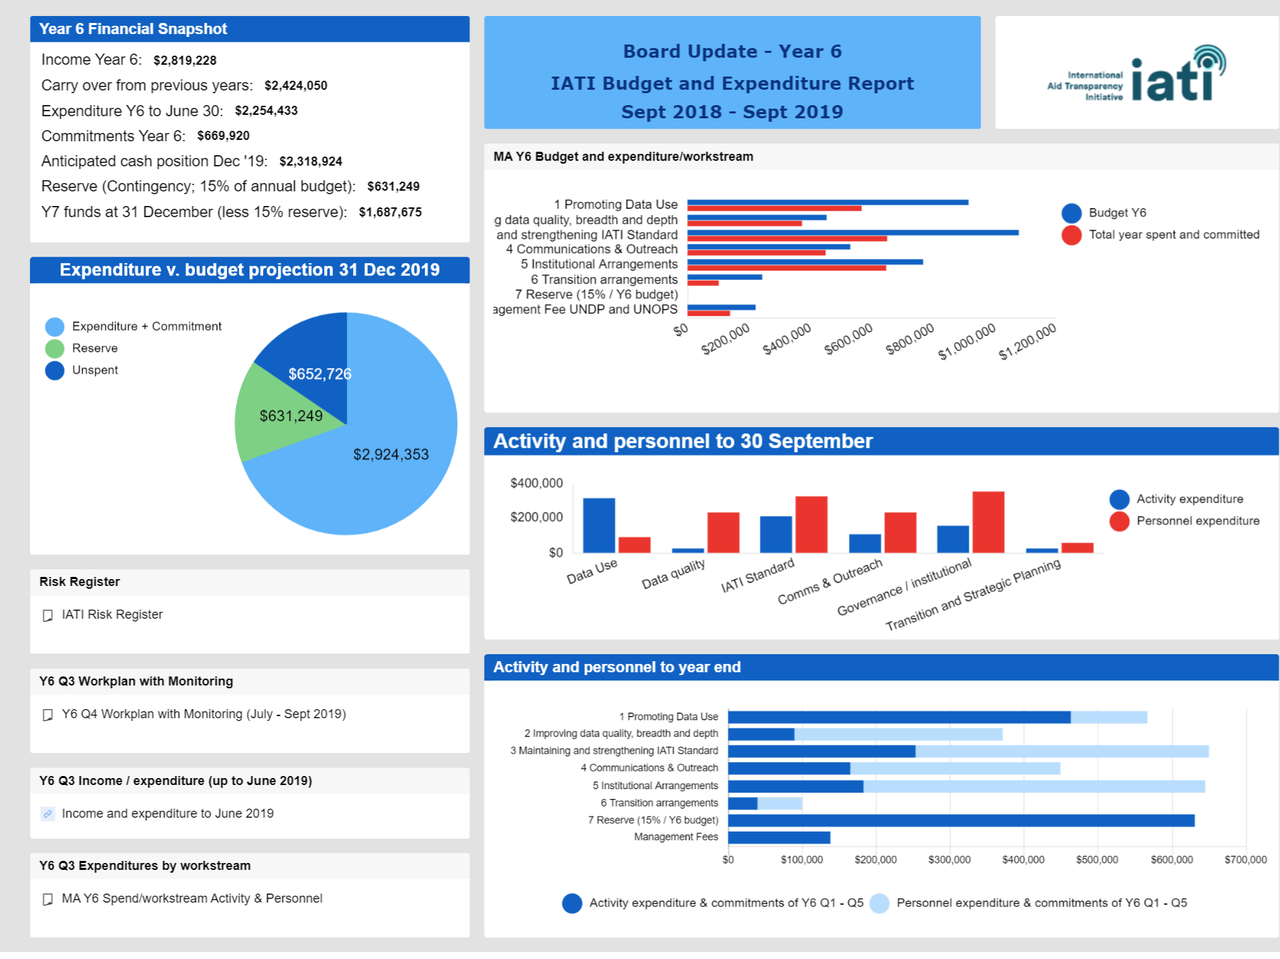 IATI Workplan and Budget Dashboard update Y6